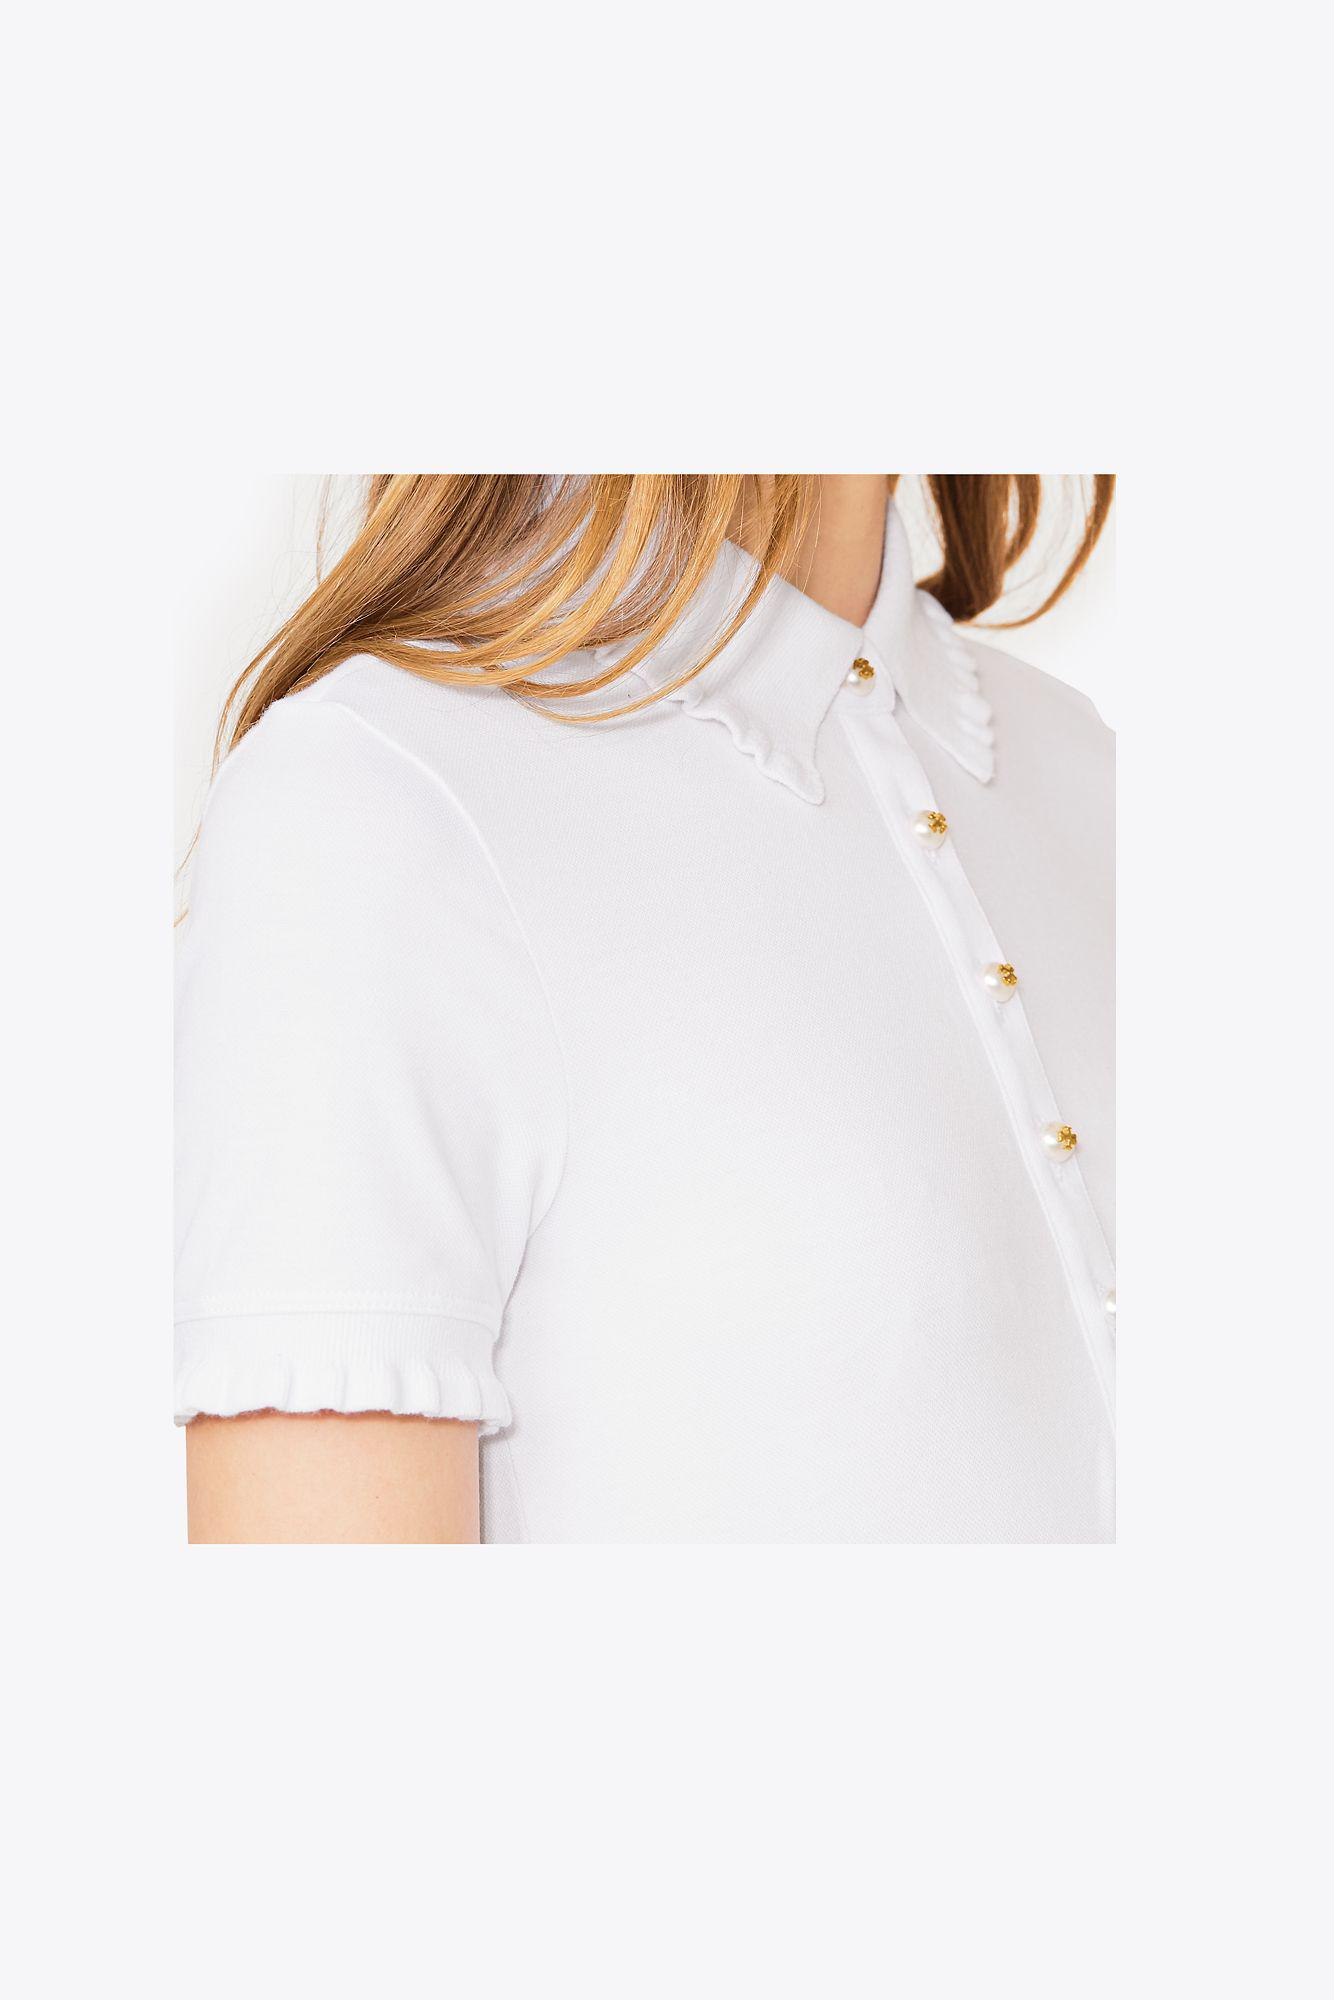 ac1722cad996 Lyst - Tory Burch Lacey Polo in White